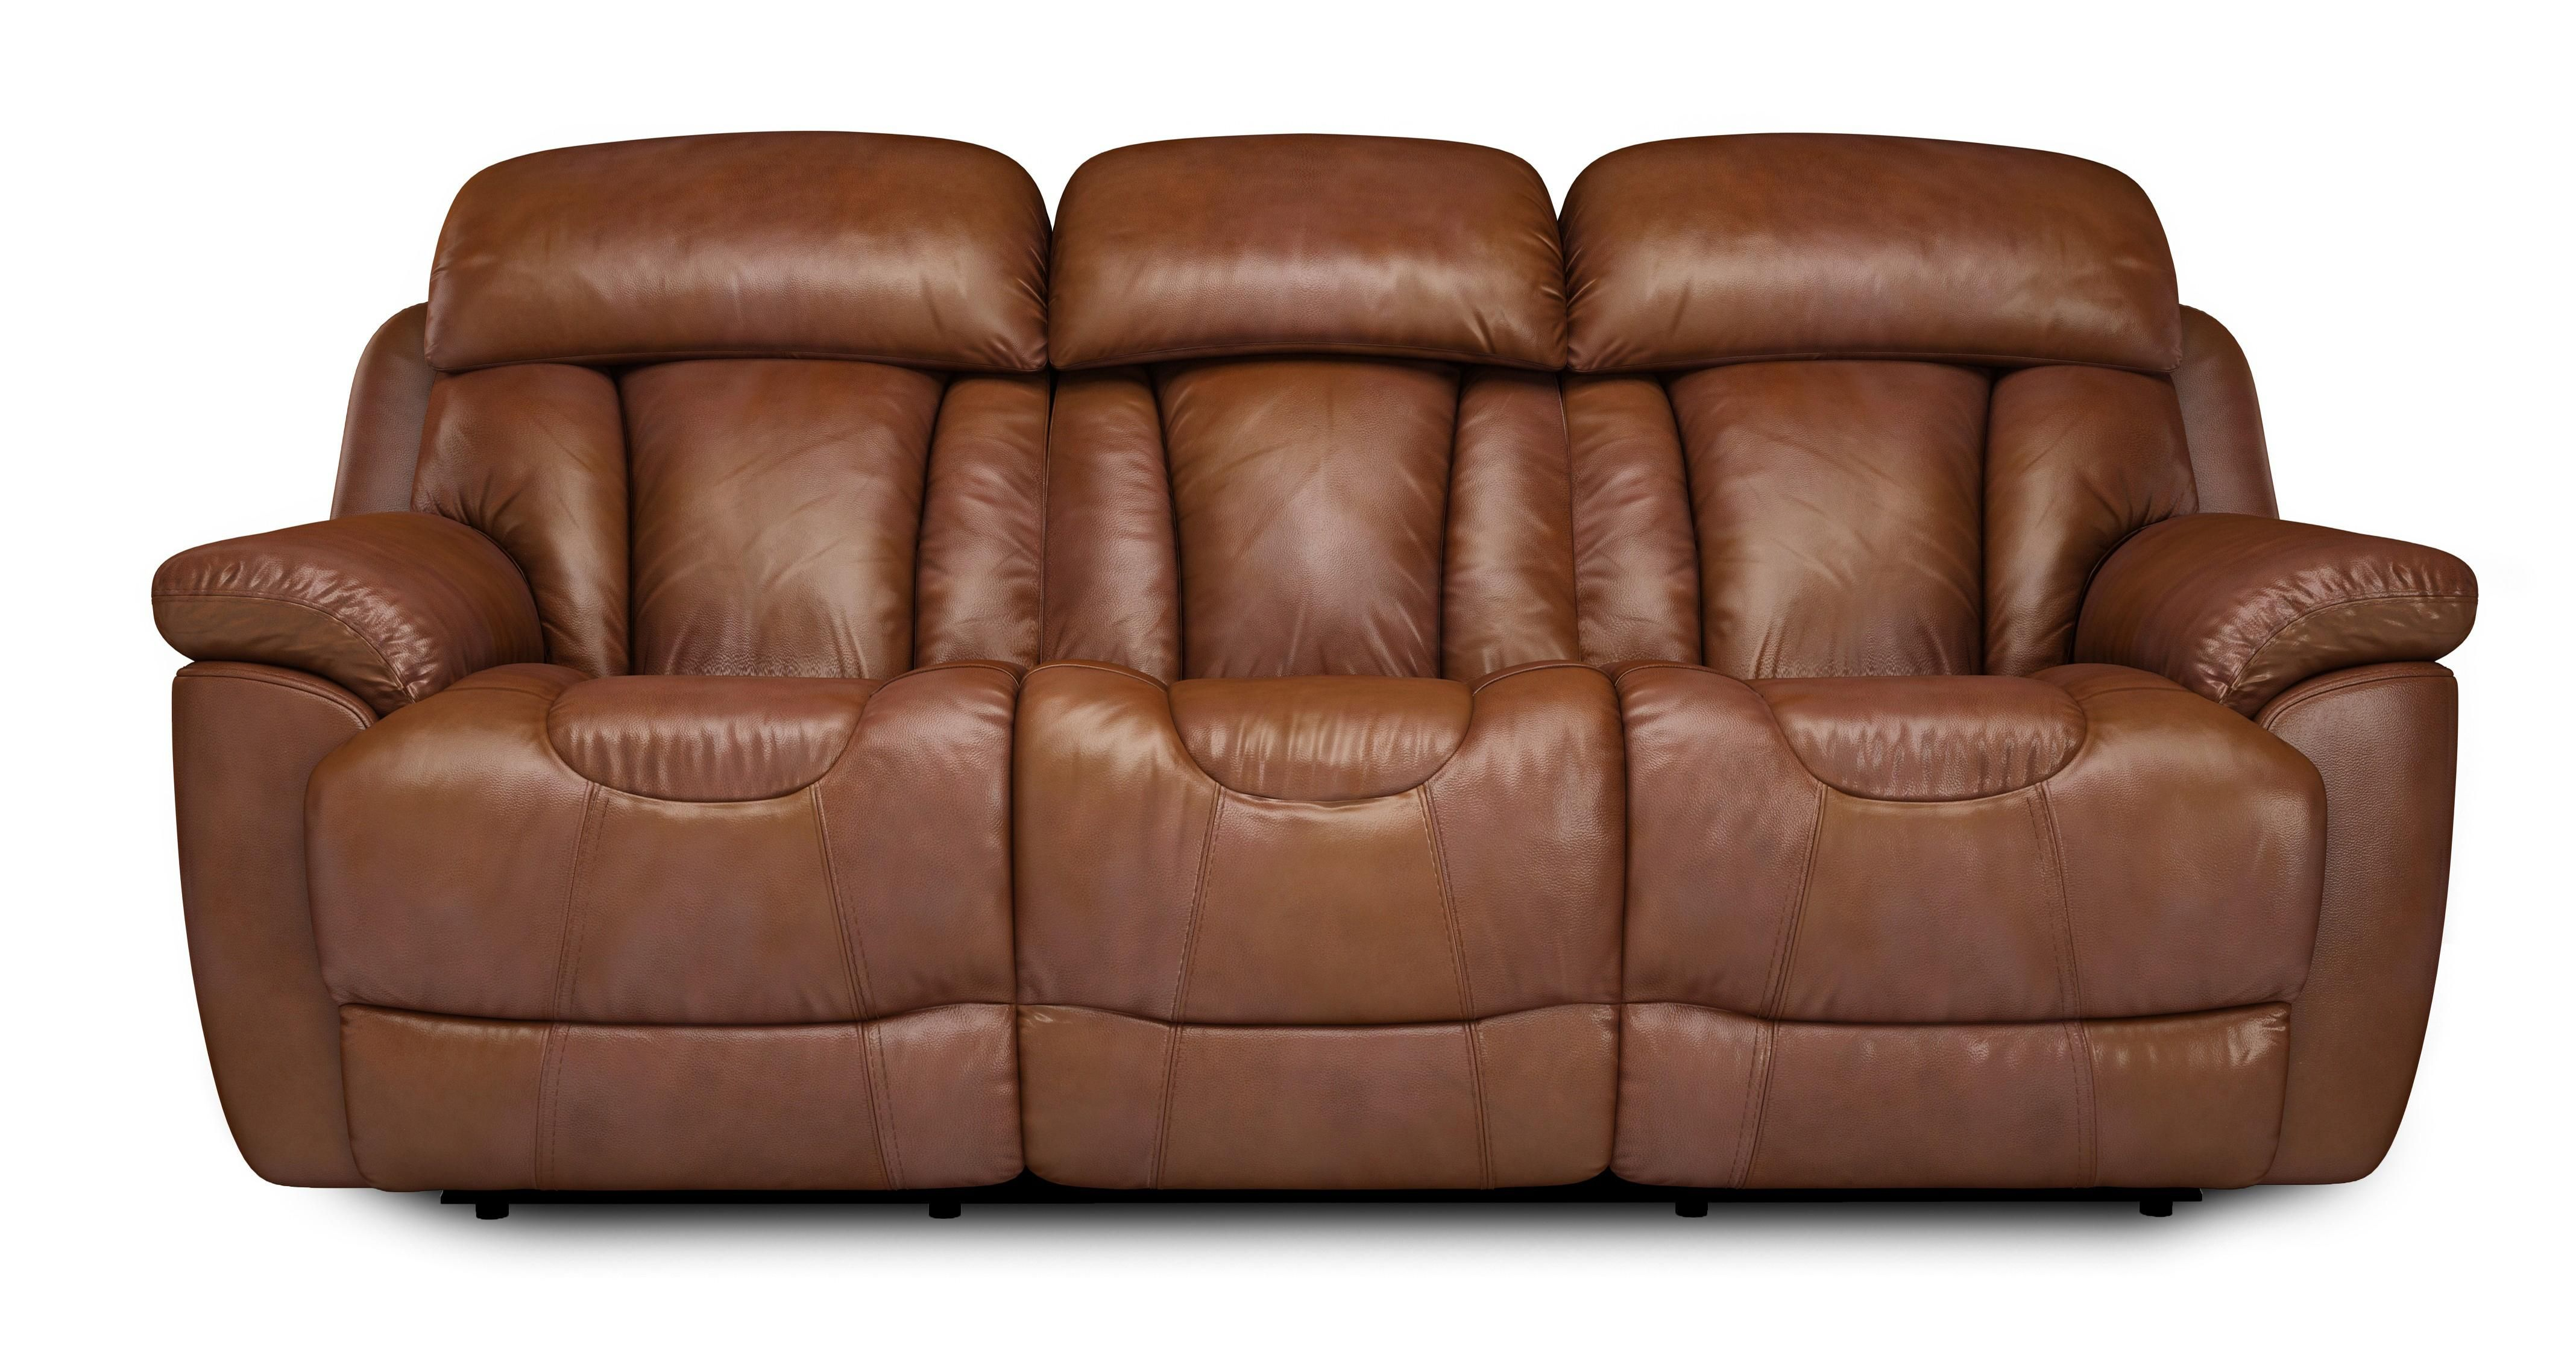 DFS 3 Seater Power Plus Recliner Panama We've brought together sumptuously soft leather with a relaxed modern shape that seems to cradle you as you unwind.